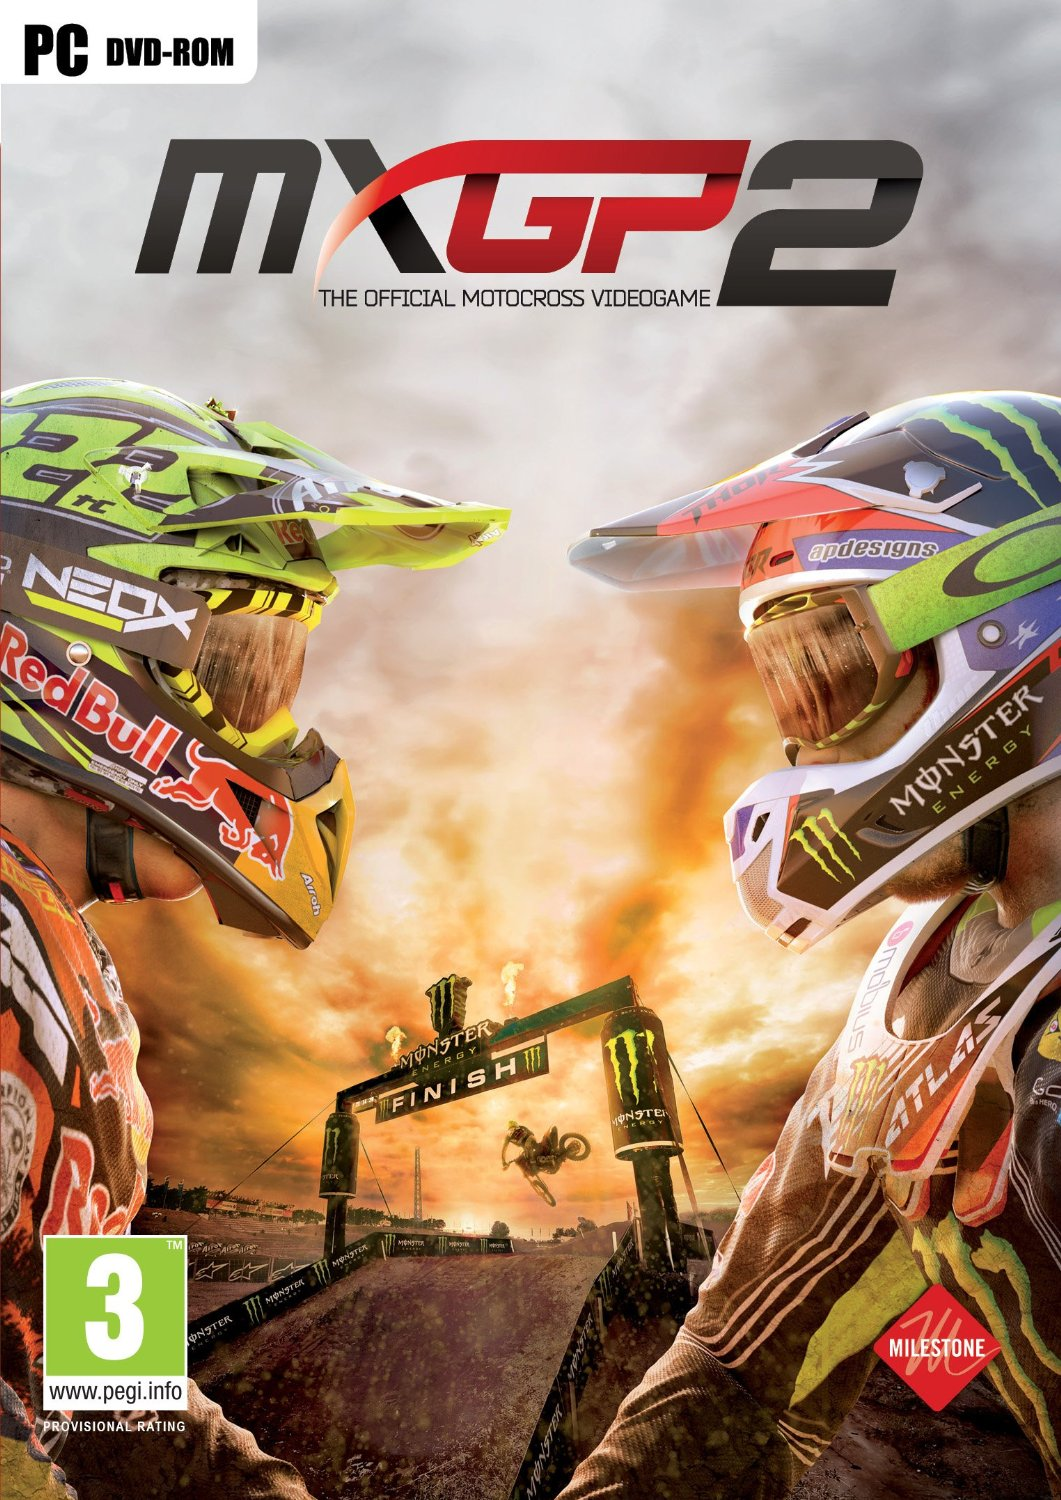 Poster for MXGP2: The Official Motocross Videogame